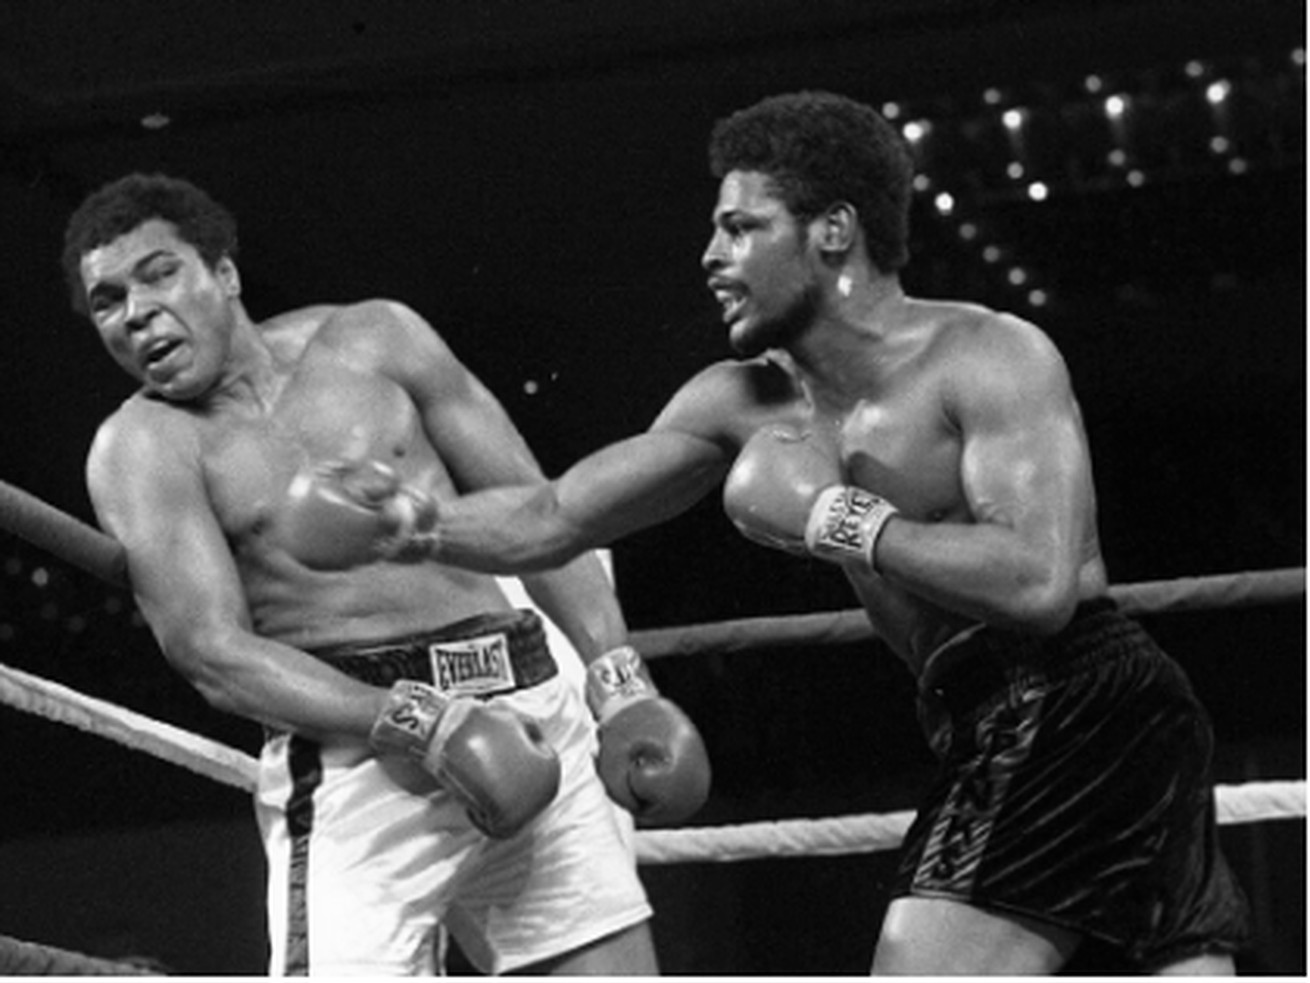 Leon Spinks lands a right hook against Muhammad Ali during their first fight for the world heavyweight title in 1978 in Las Vegas. Spinks won the title in his eighth pro fight.